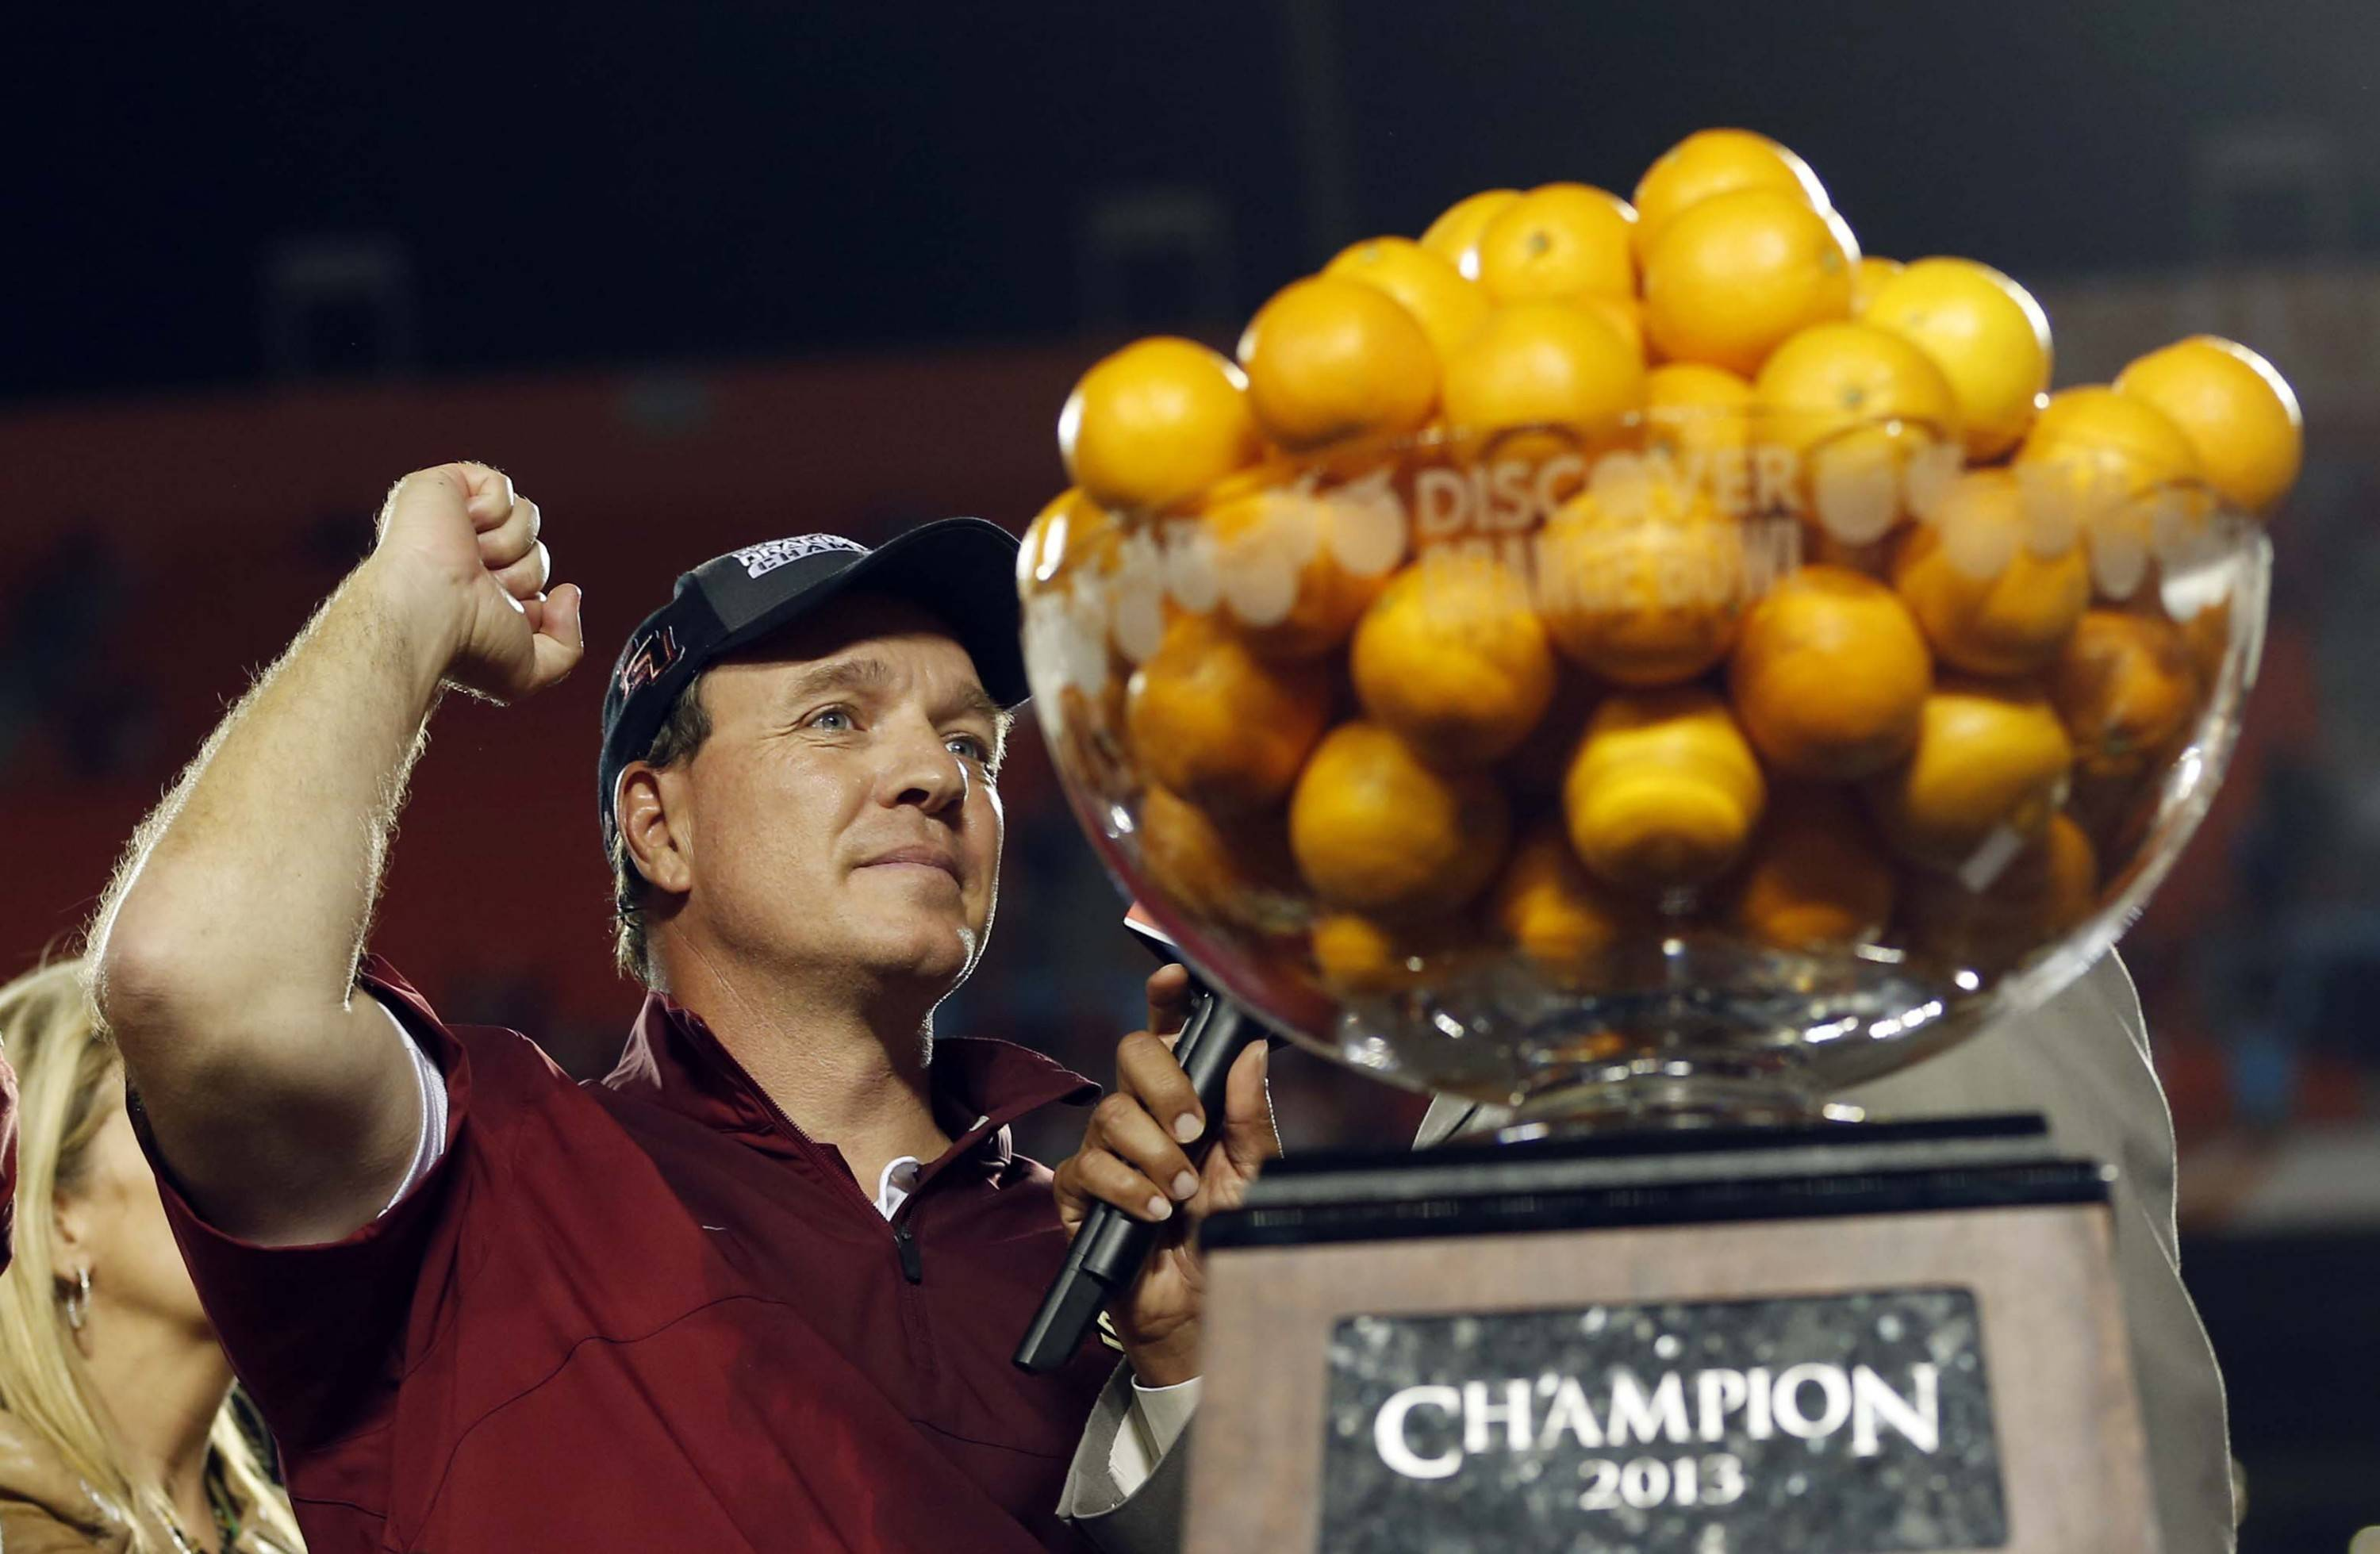 Florida State head coach Jimbo Fisher celebrates next to the Orange Bowl trophy  after defeating Northern Illinois 31-10 at the Orange Bowl NCAA college football game, early Wednesday, Jan. 2, 2013, in Miami. (AP Photo/Alan Diaz)